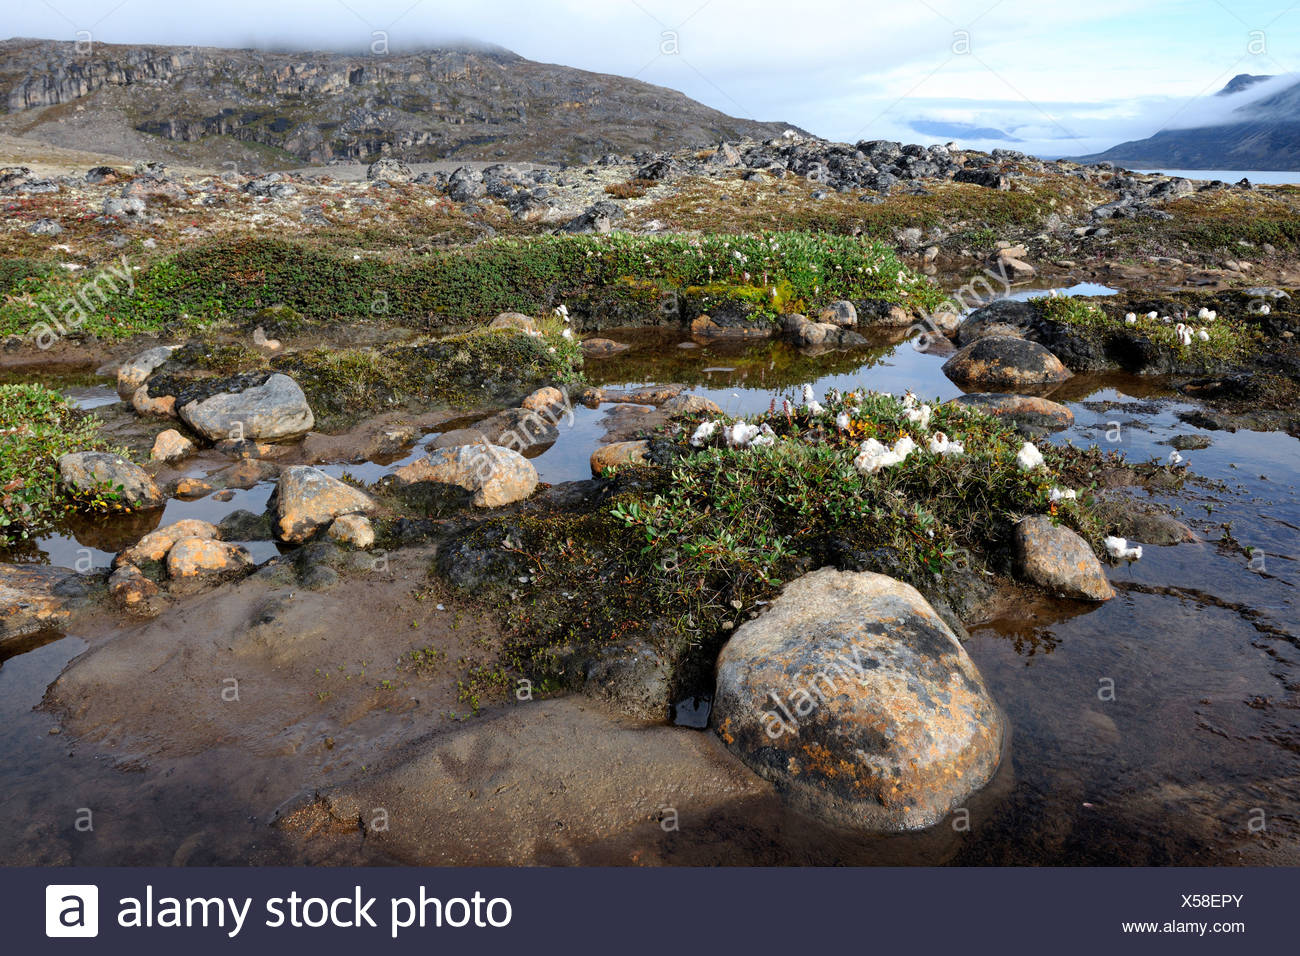 Canso Channel, entry Auyuittuq National Park, Baffin Island, Nunavut, Canada - Stock Image